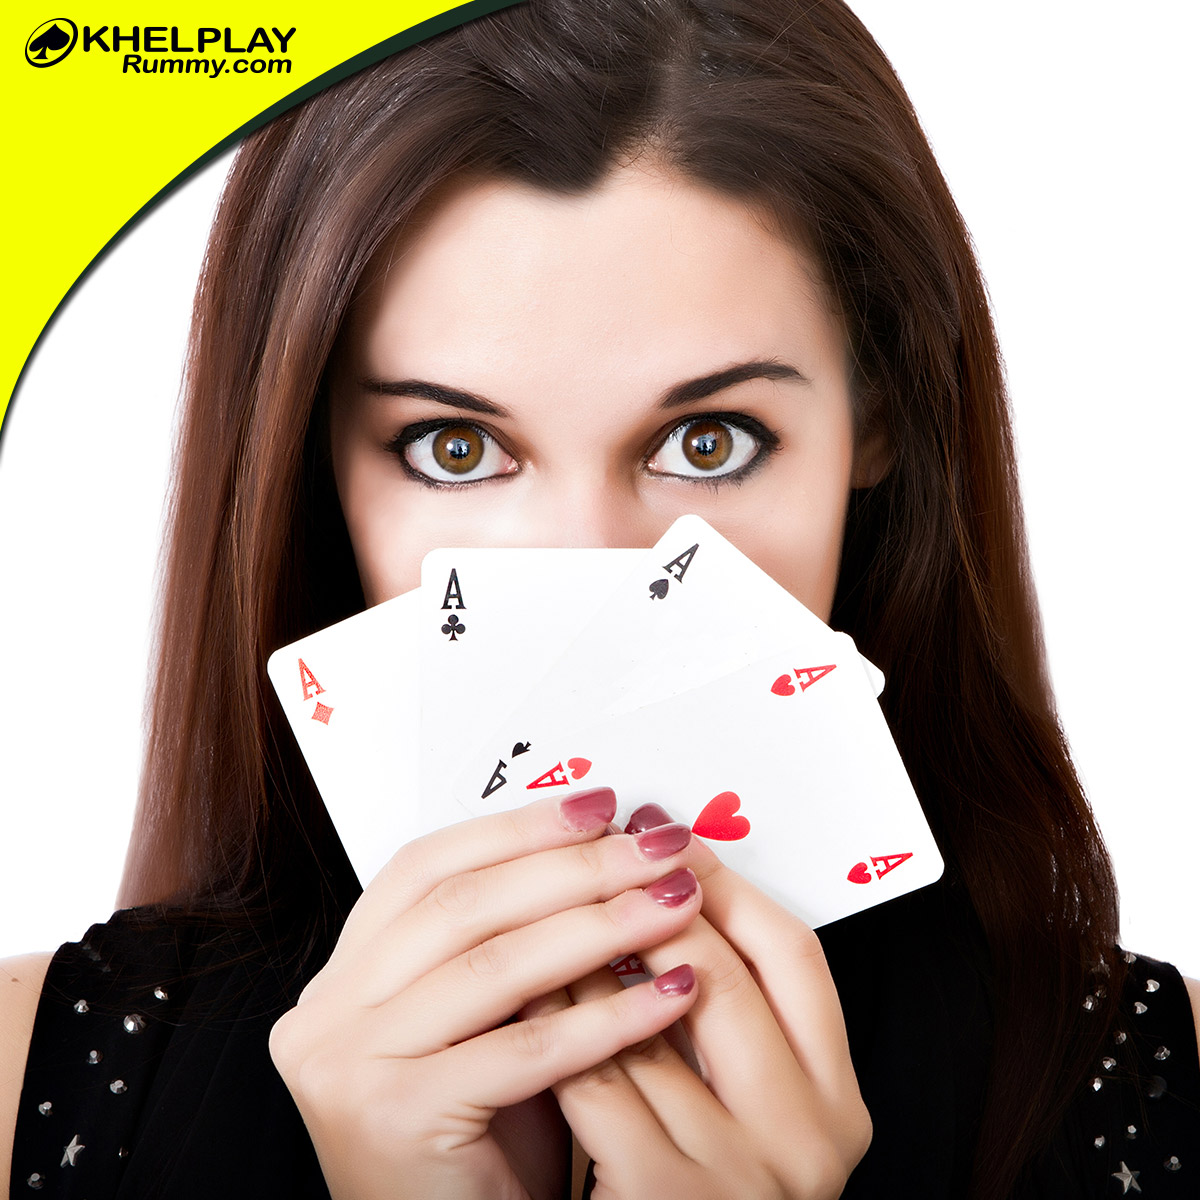 What is VIP Club Membership on Khelplay Rummy?